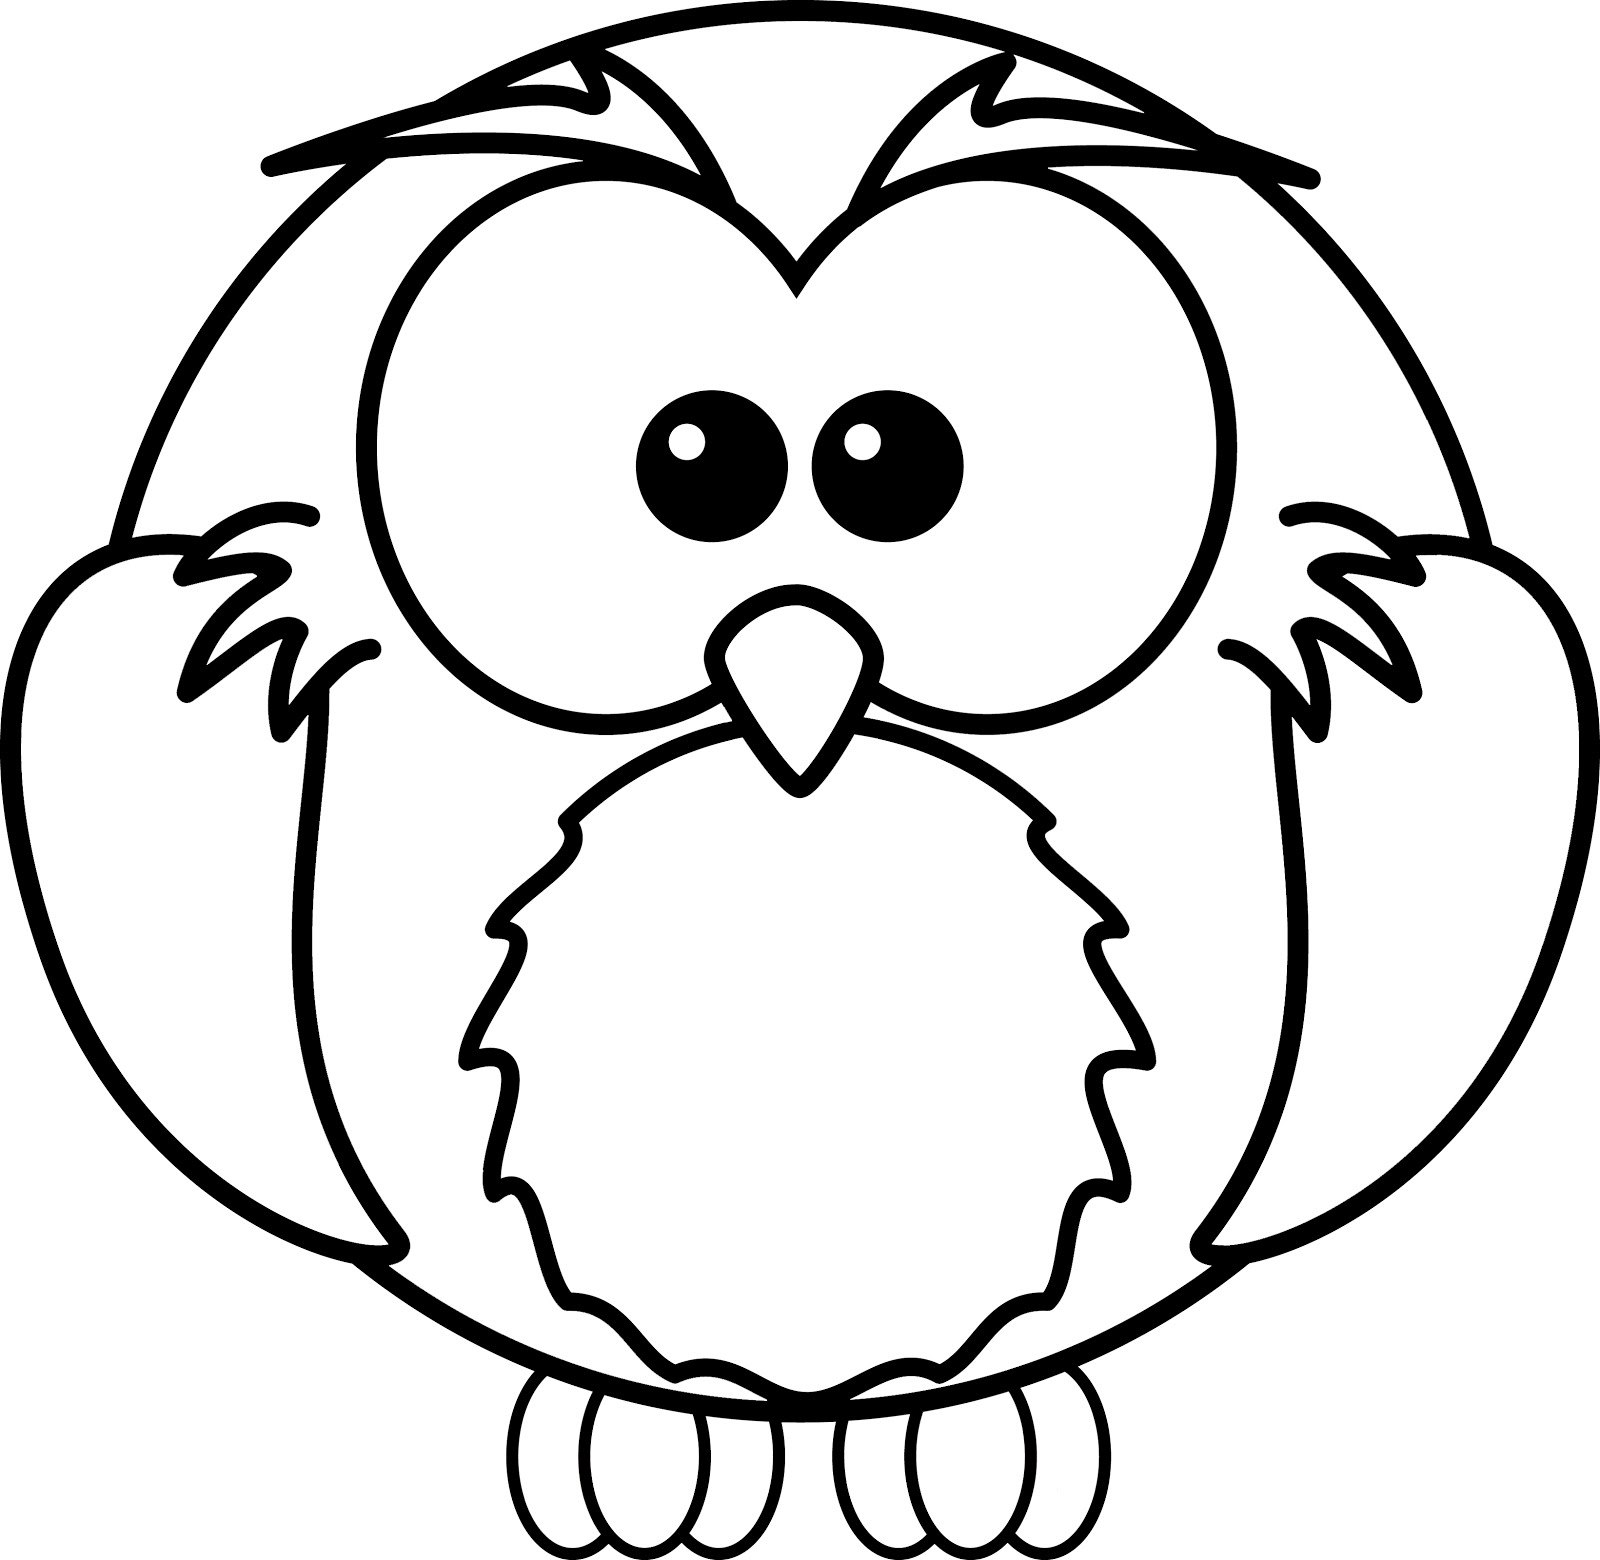 1600x1560 Cartoon Owl Coloring Pages